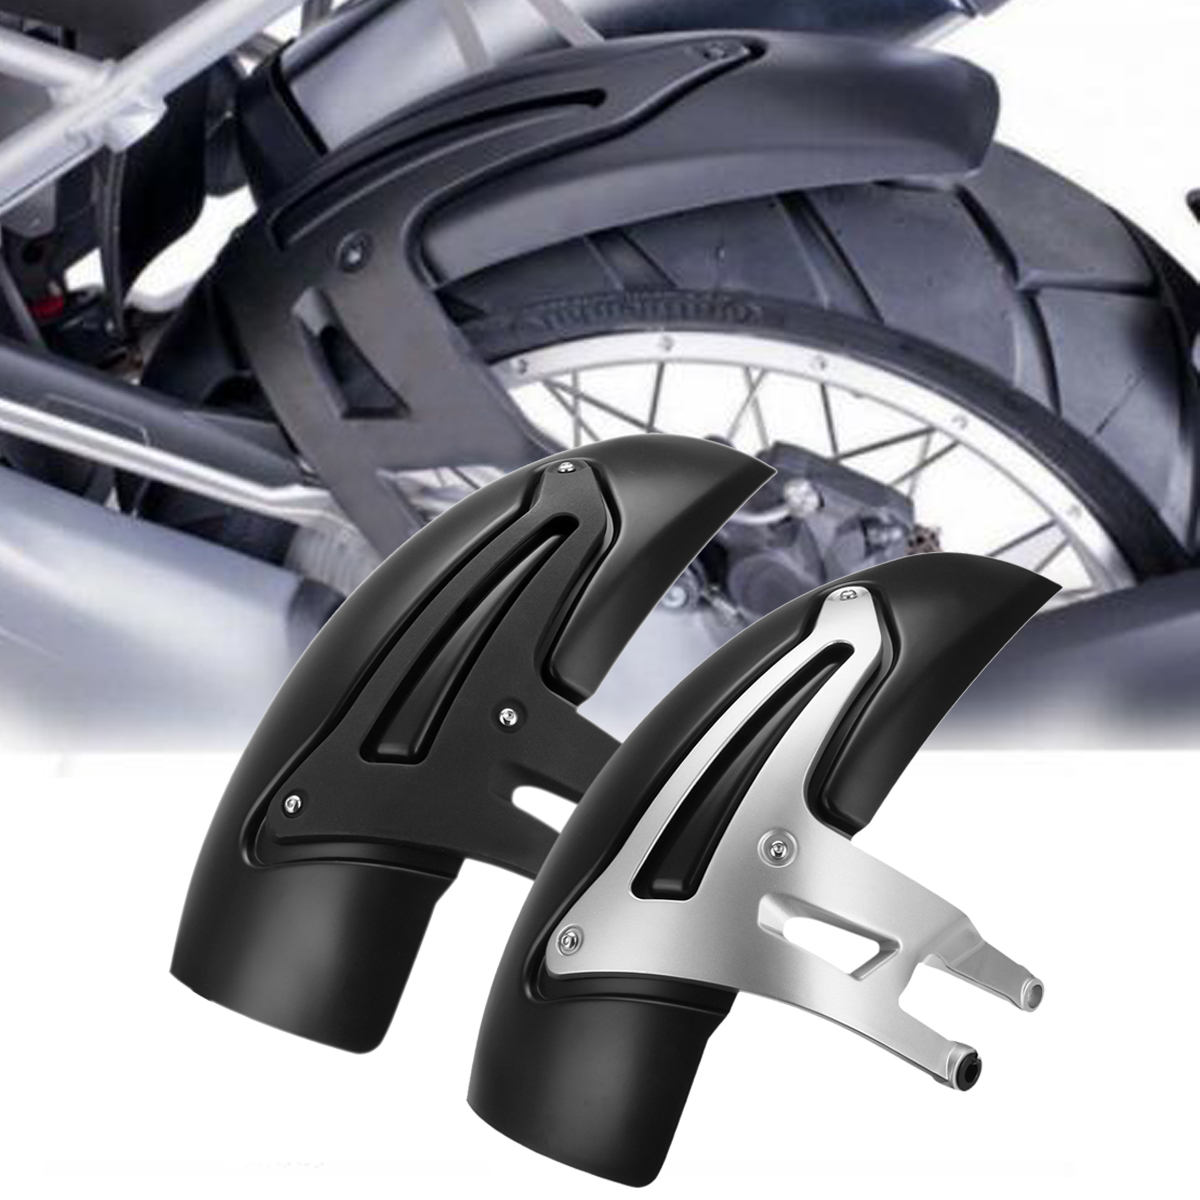 Motorcycle Rear Fender Mudguard Bracket Wheel Cover Hugger Extension FOR BMW R1200 GS LC/R 1200GS Adventure 2014-2018 for bmw r1200gs r1200 gs adventure 2008 2012 motorcycle carbon rear fender bracket wheel hugger fender mudguard splash guard